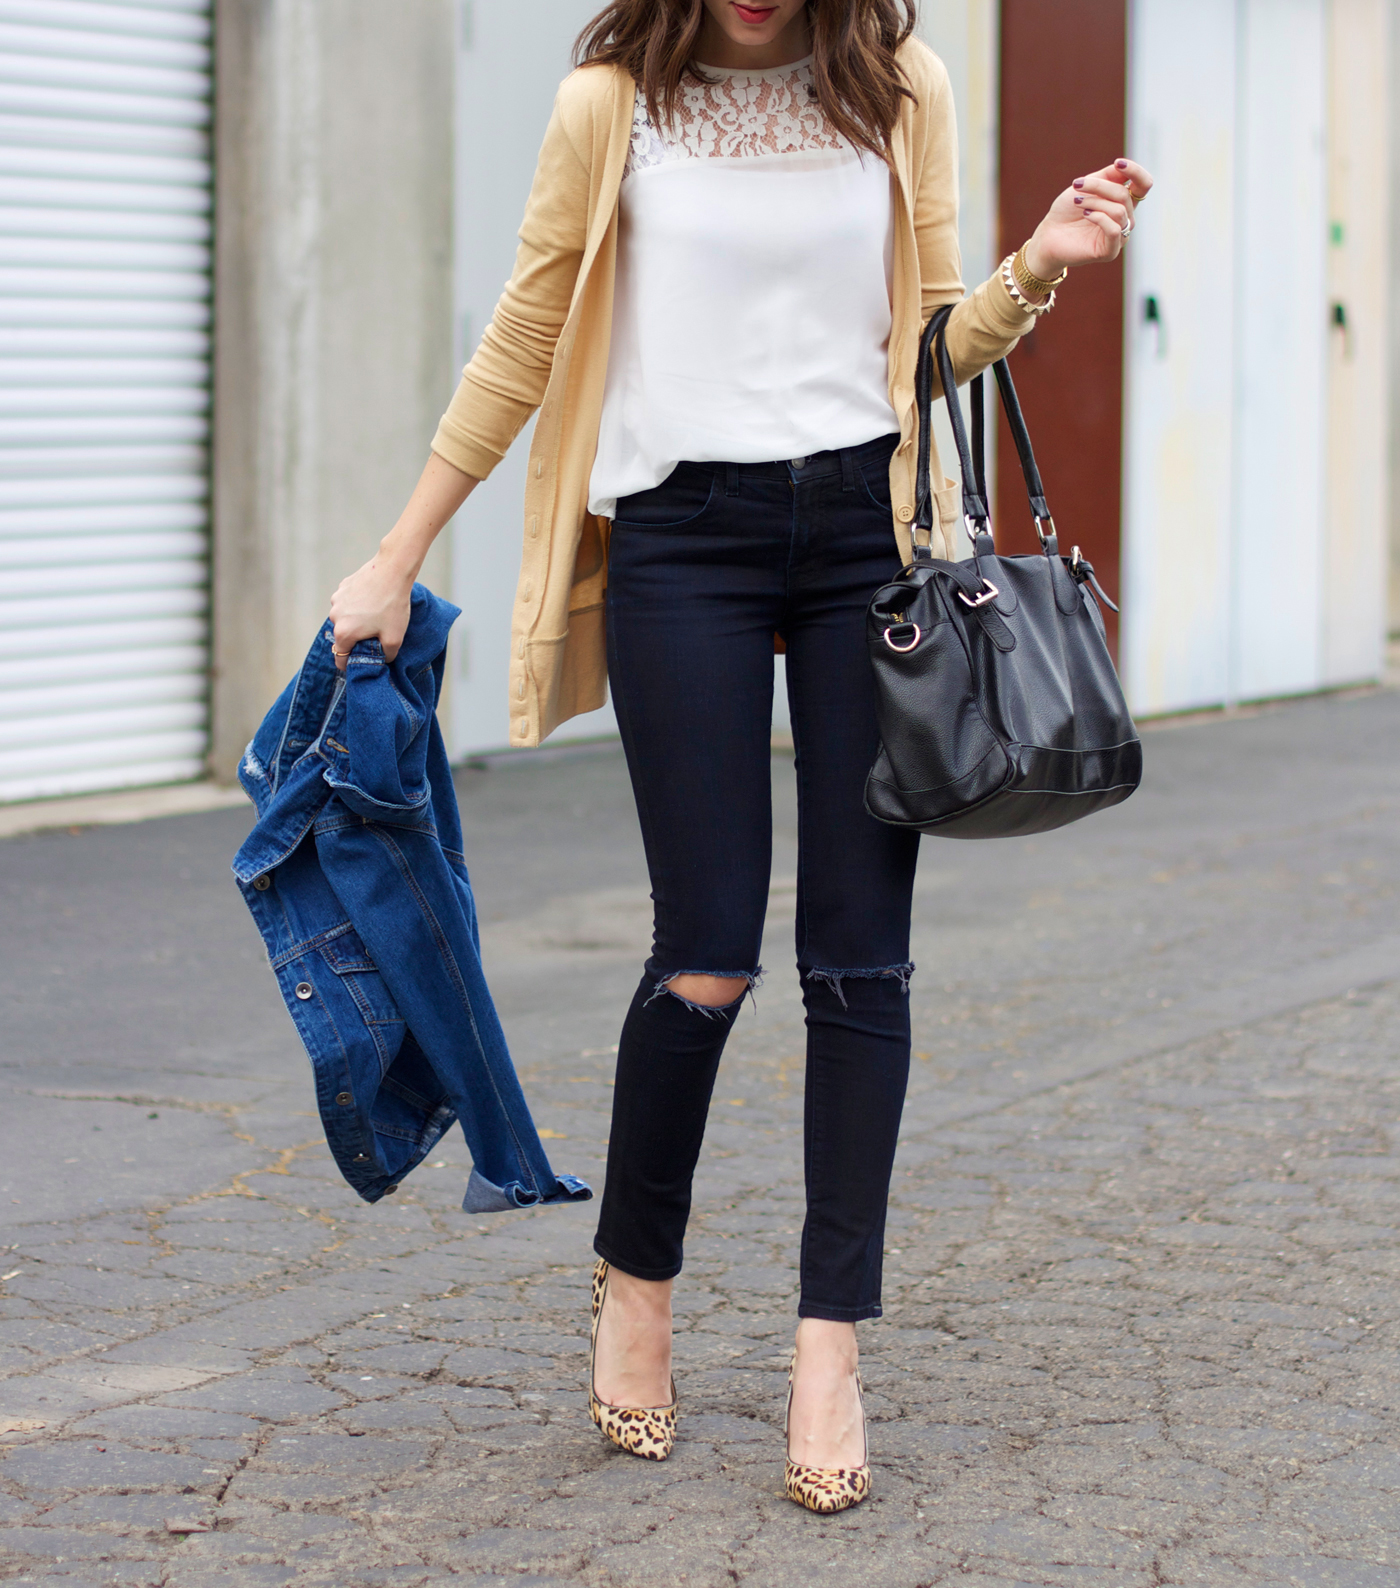 black-white-and-tan-outfit